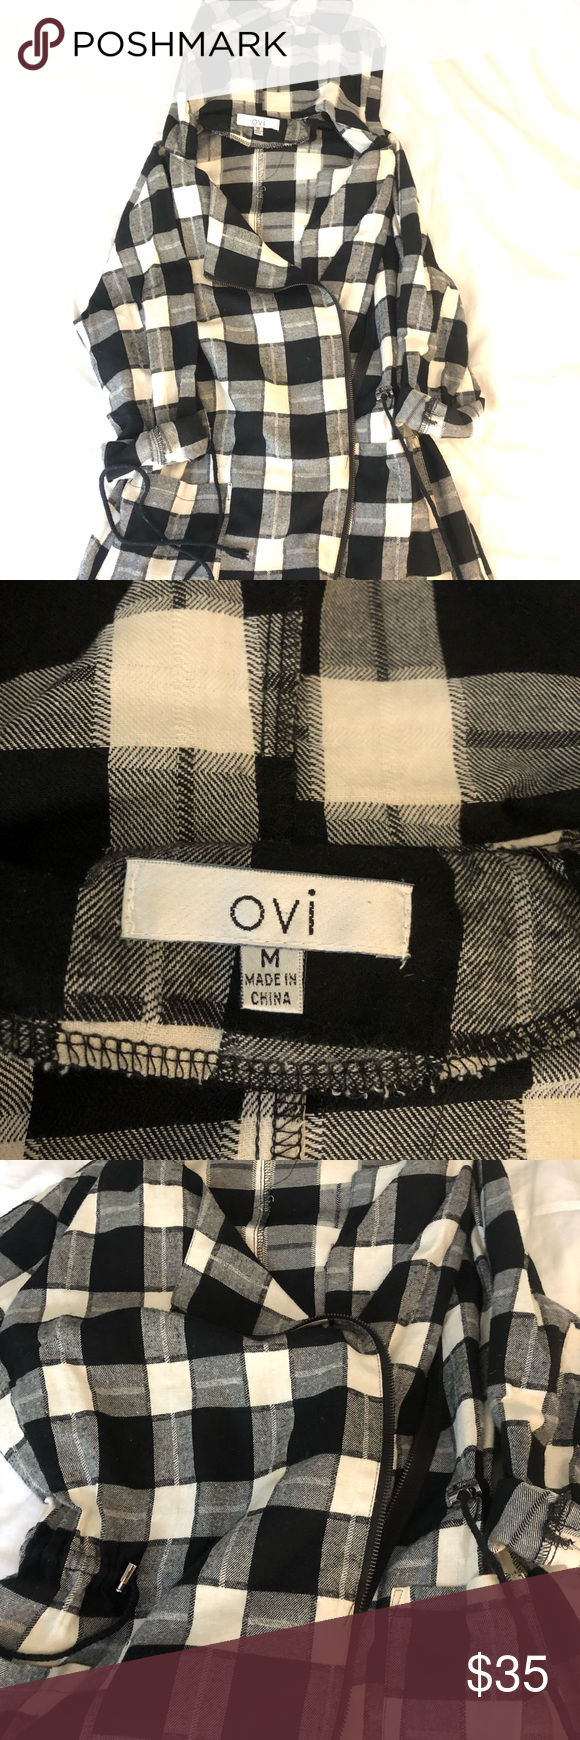 ADORABLE PLAID JACKET LOVE this pea coat style lightweight jacket- size M diagonal zipper with hood. Great condition Ovi Jackets & Coats #myposhpicks